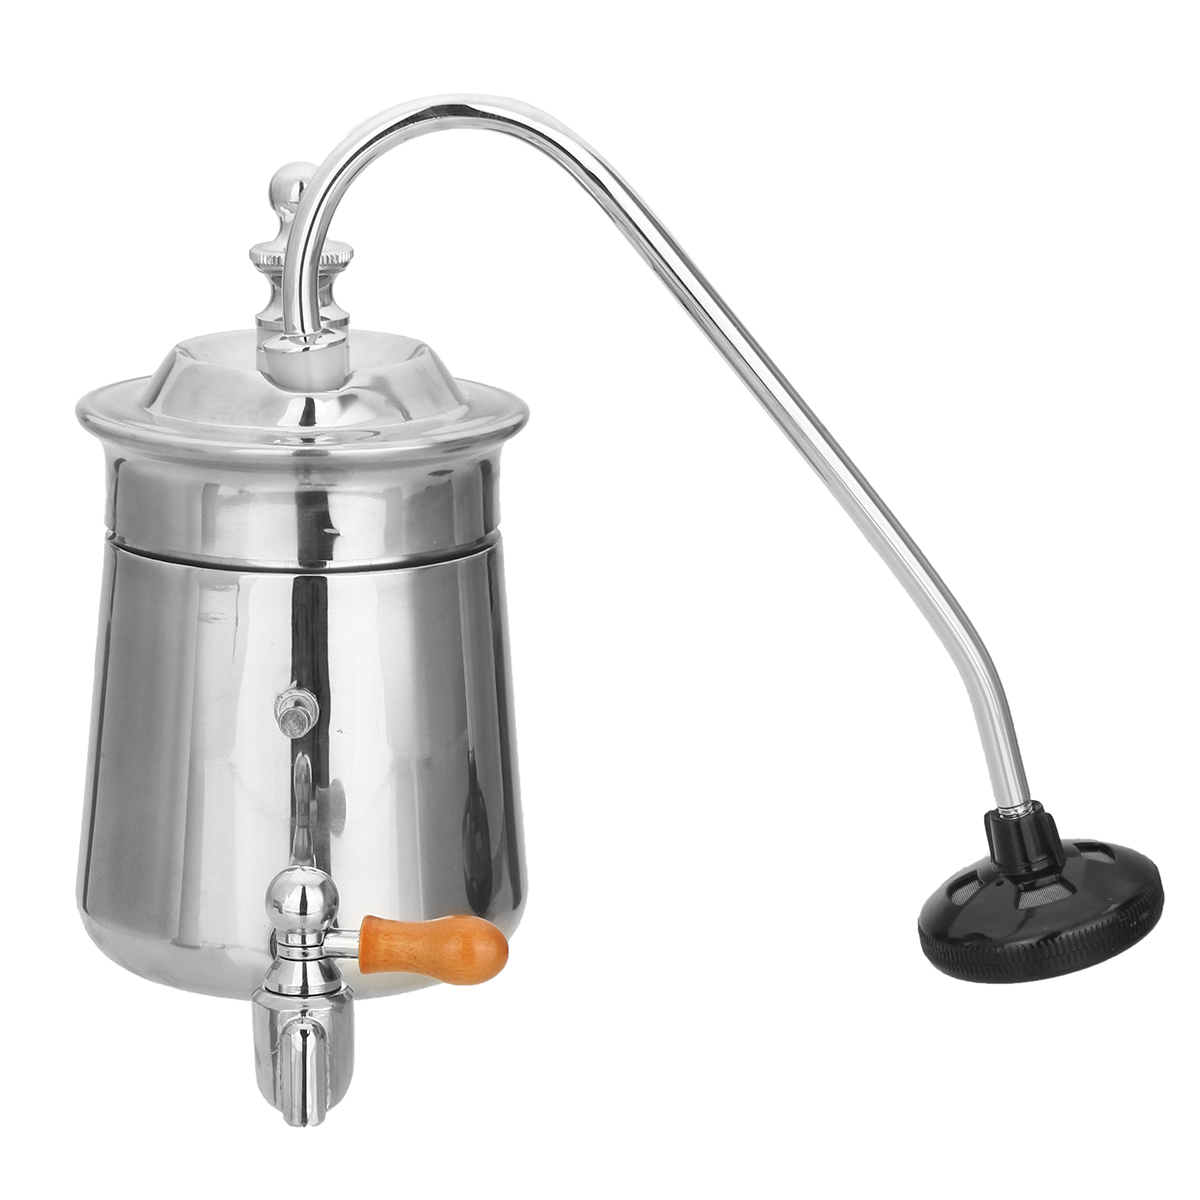 Siphon Coffee Maker Nz : Stainless Steel Diguo Belgium Belgian Royal Balance Syphon Coffee Maker Siphon Brewer TOP Grade ...